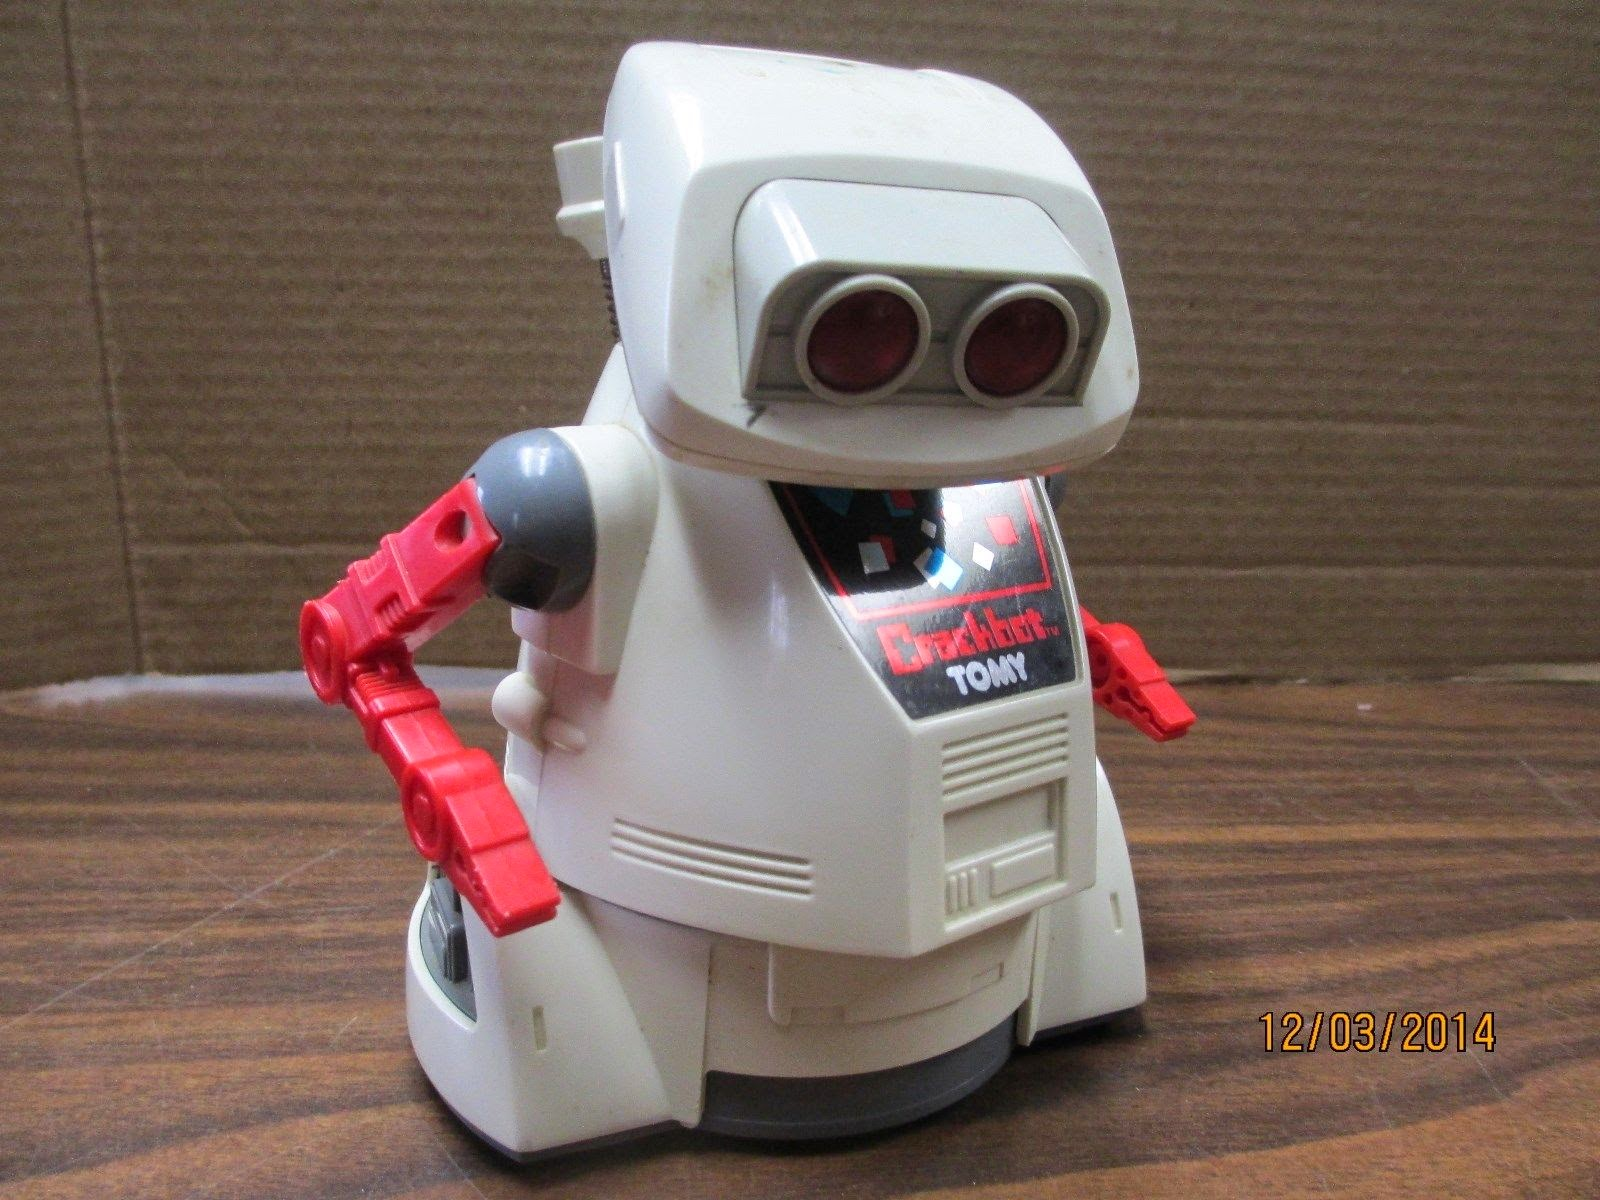 Vintage 1980's Crackbot From Tomy Robot